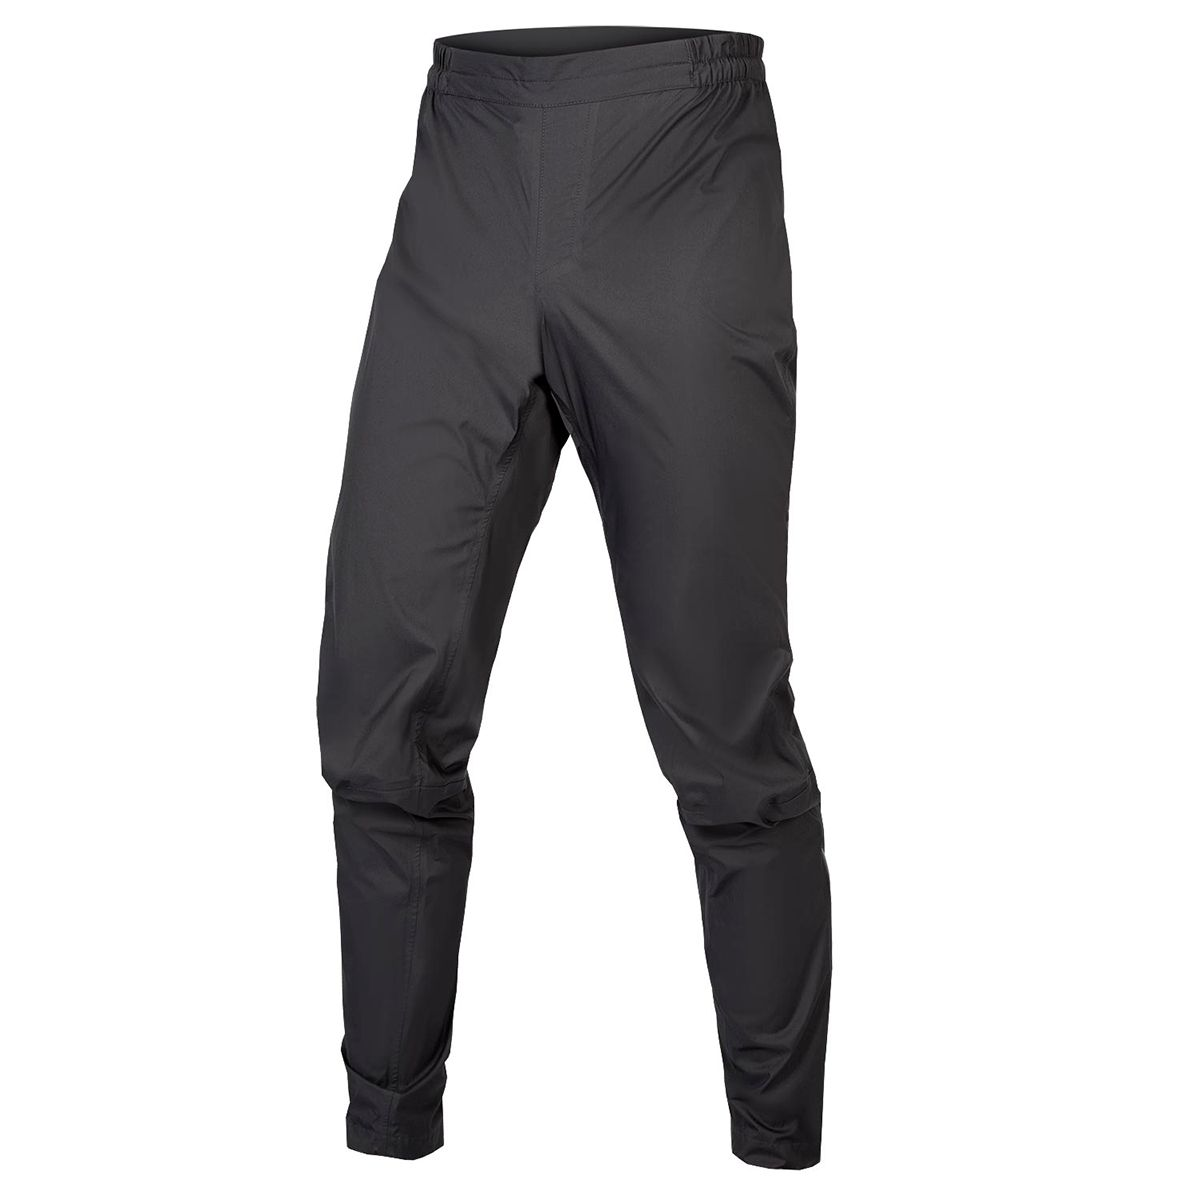 MTR waterproof trousers for men